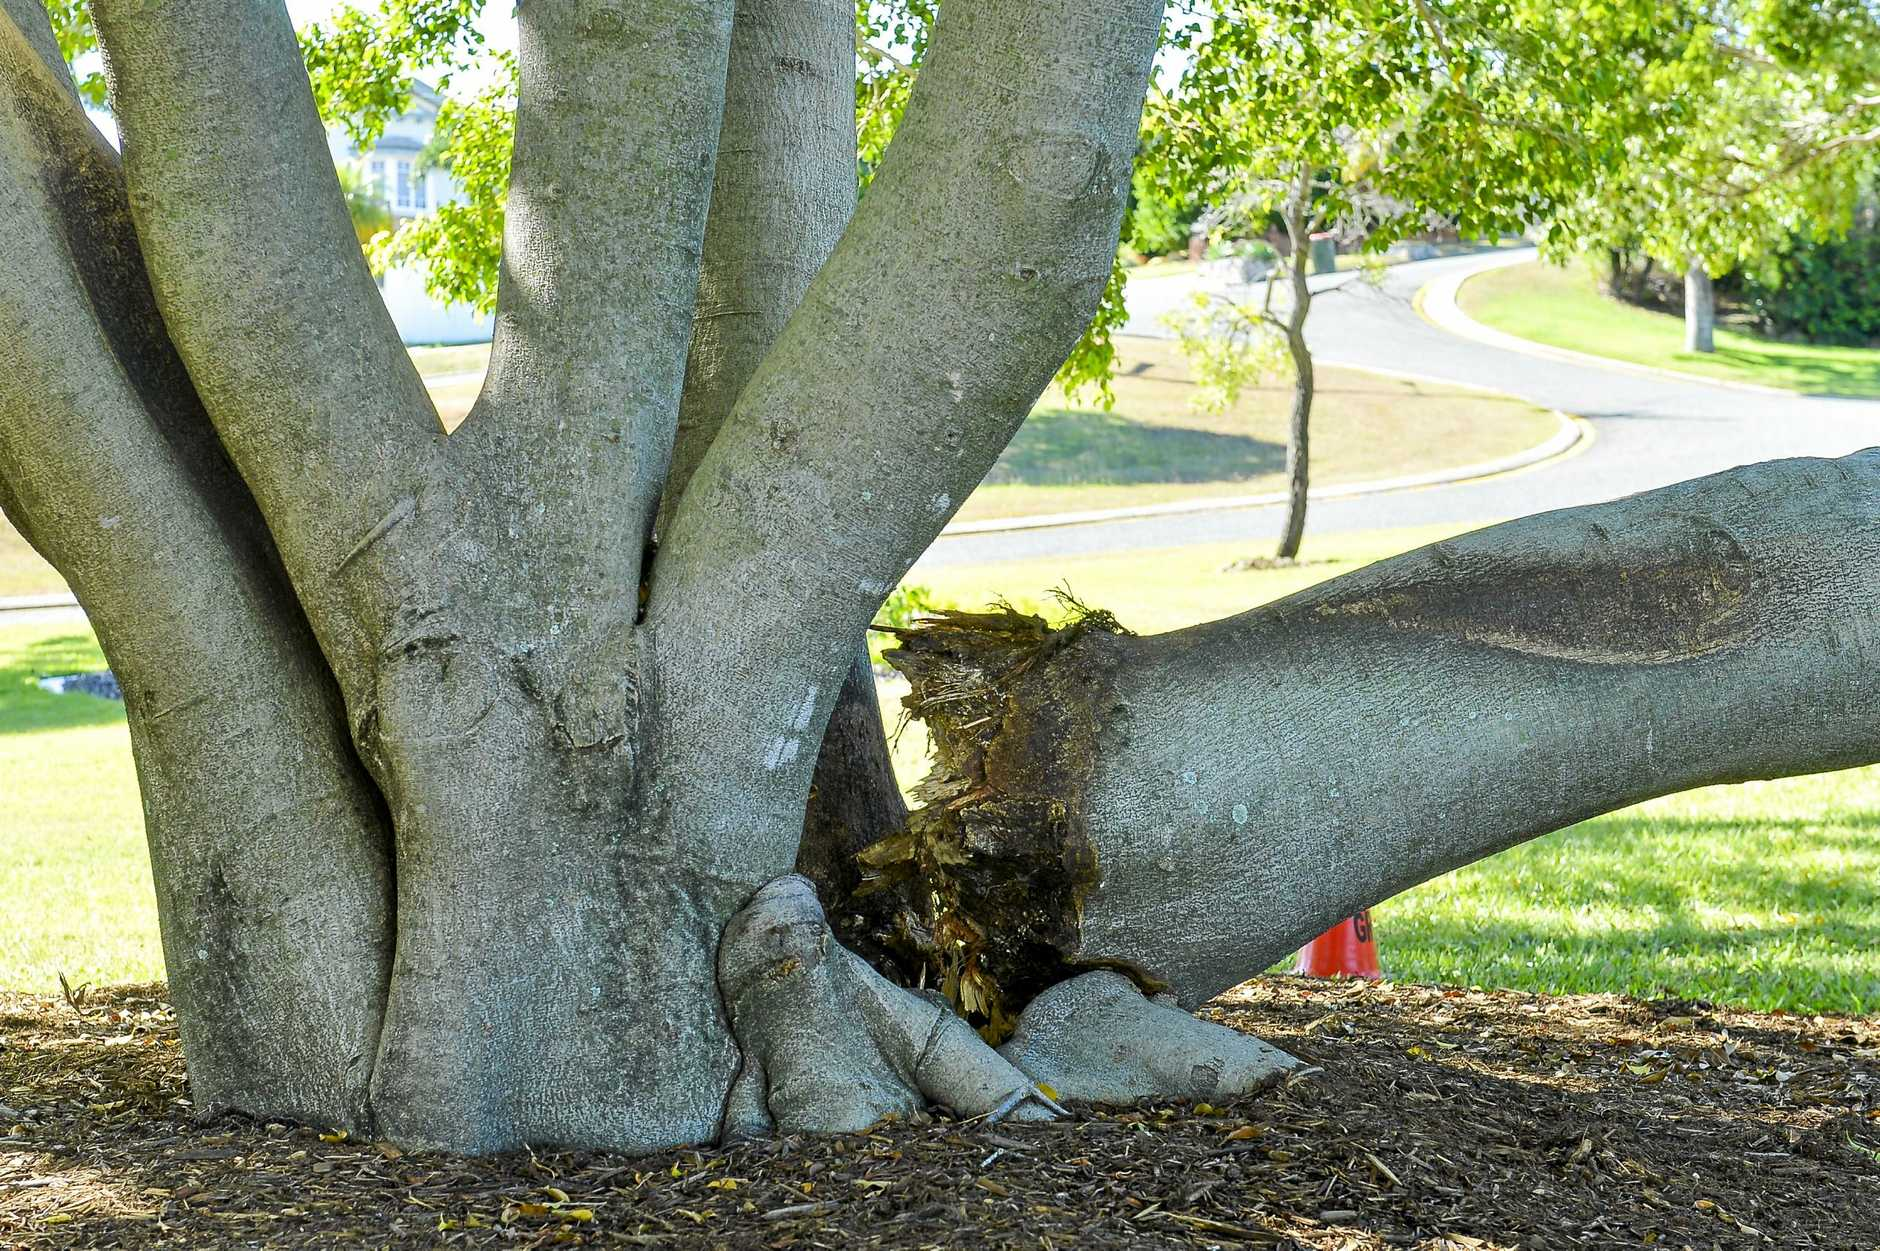 A fallen tree branch in Gladstone's Central Park was a popular sitting place for children watching the recent Anzac Day ceremonies.